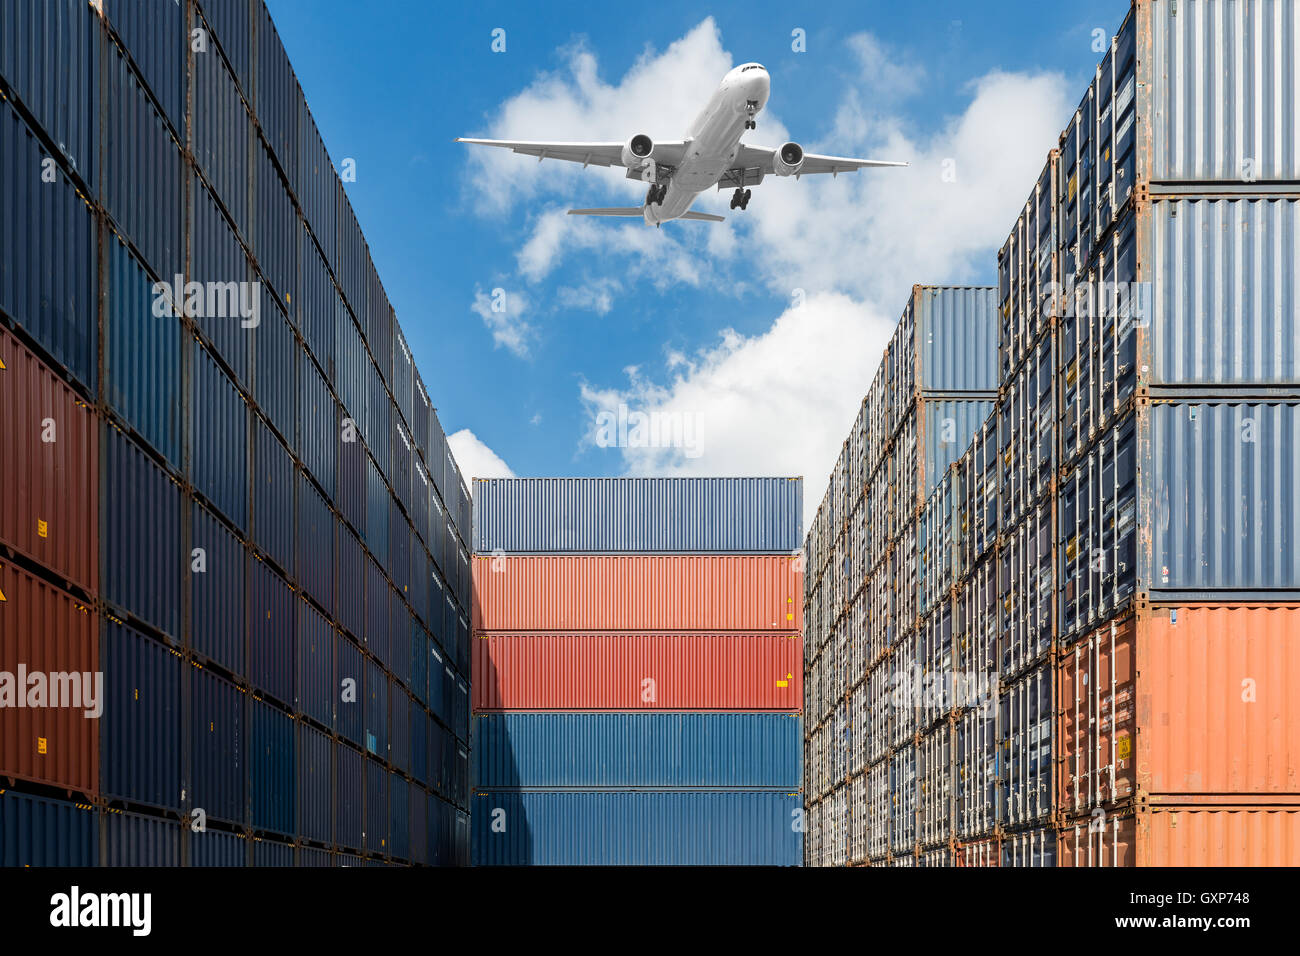 Stack of cargo containers with airplane at port terminal use for import, export and logistics background - Stock Image